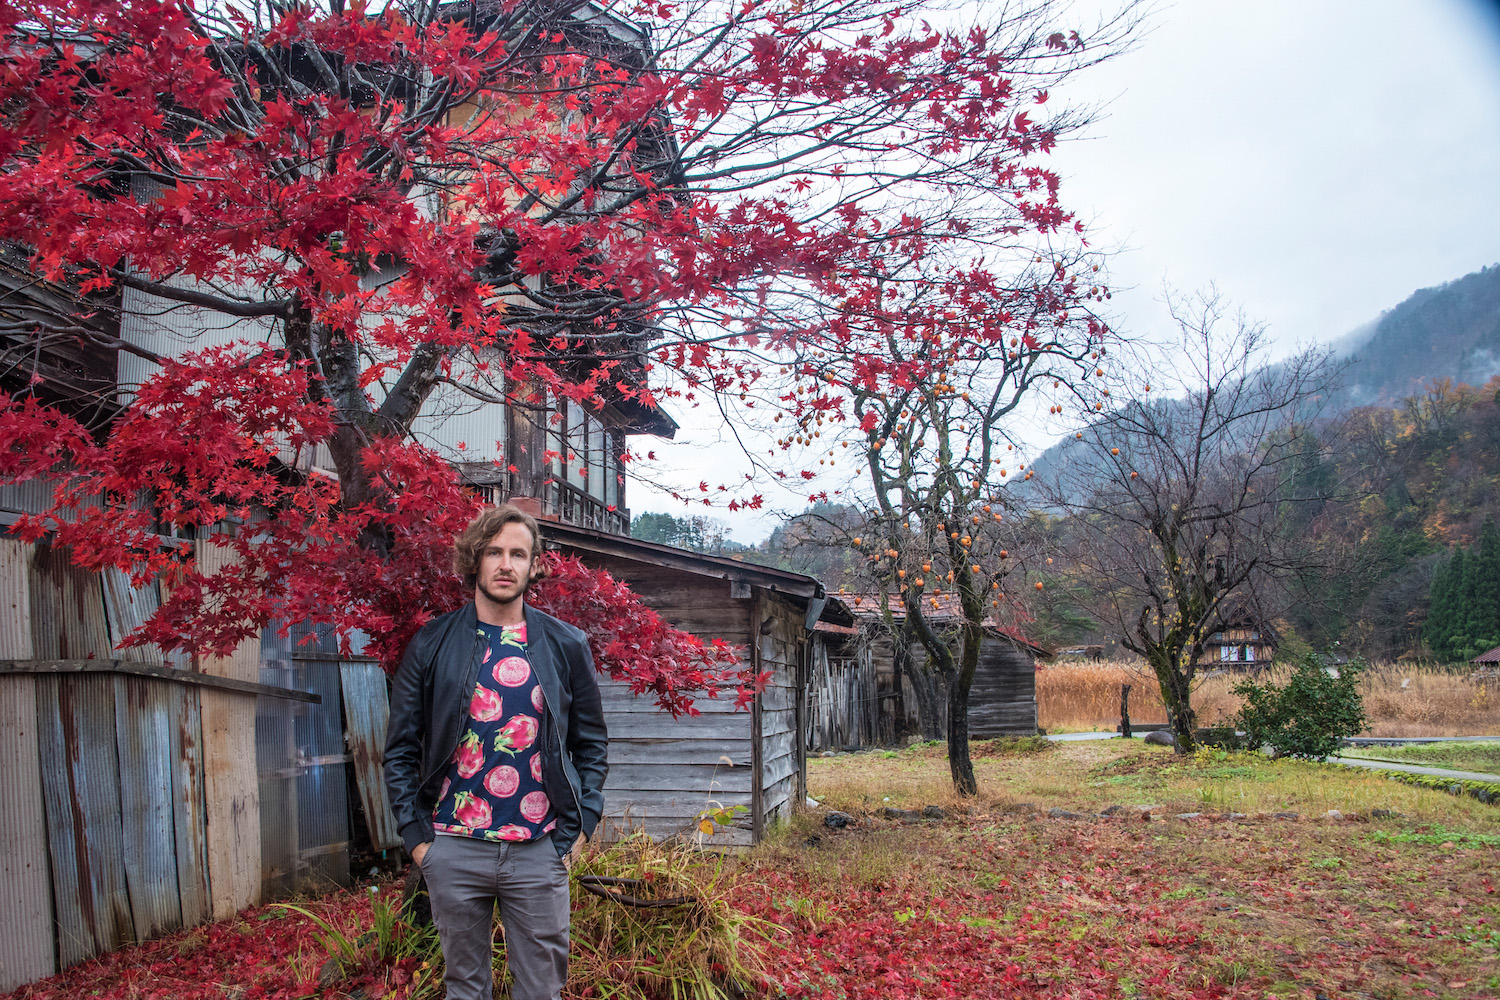 Robert Schrader in Shirakawa-go, Japan